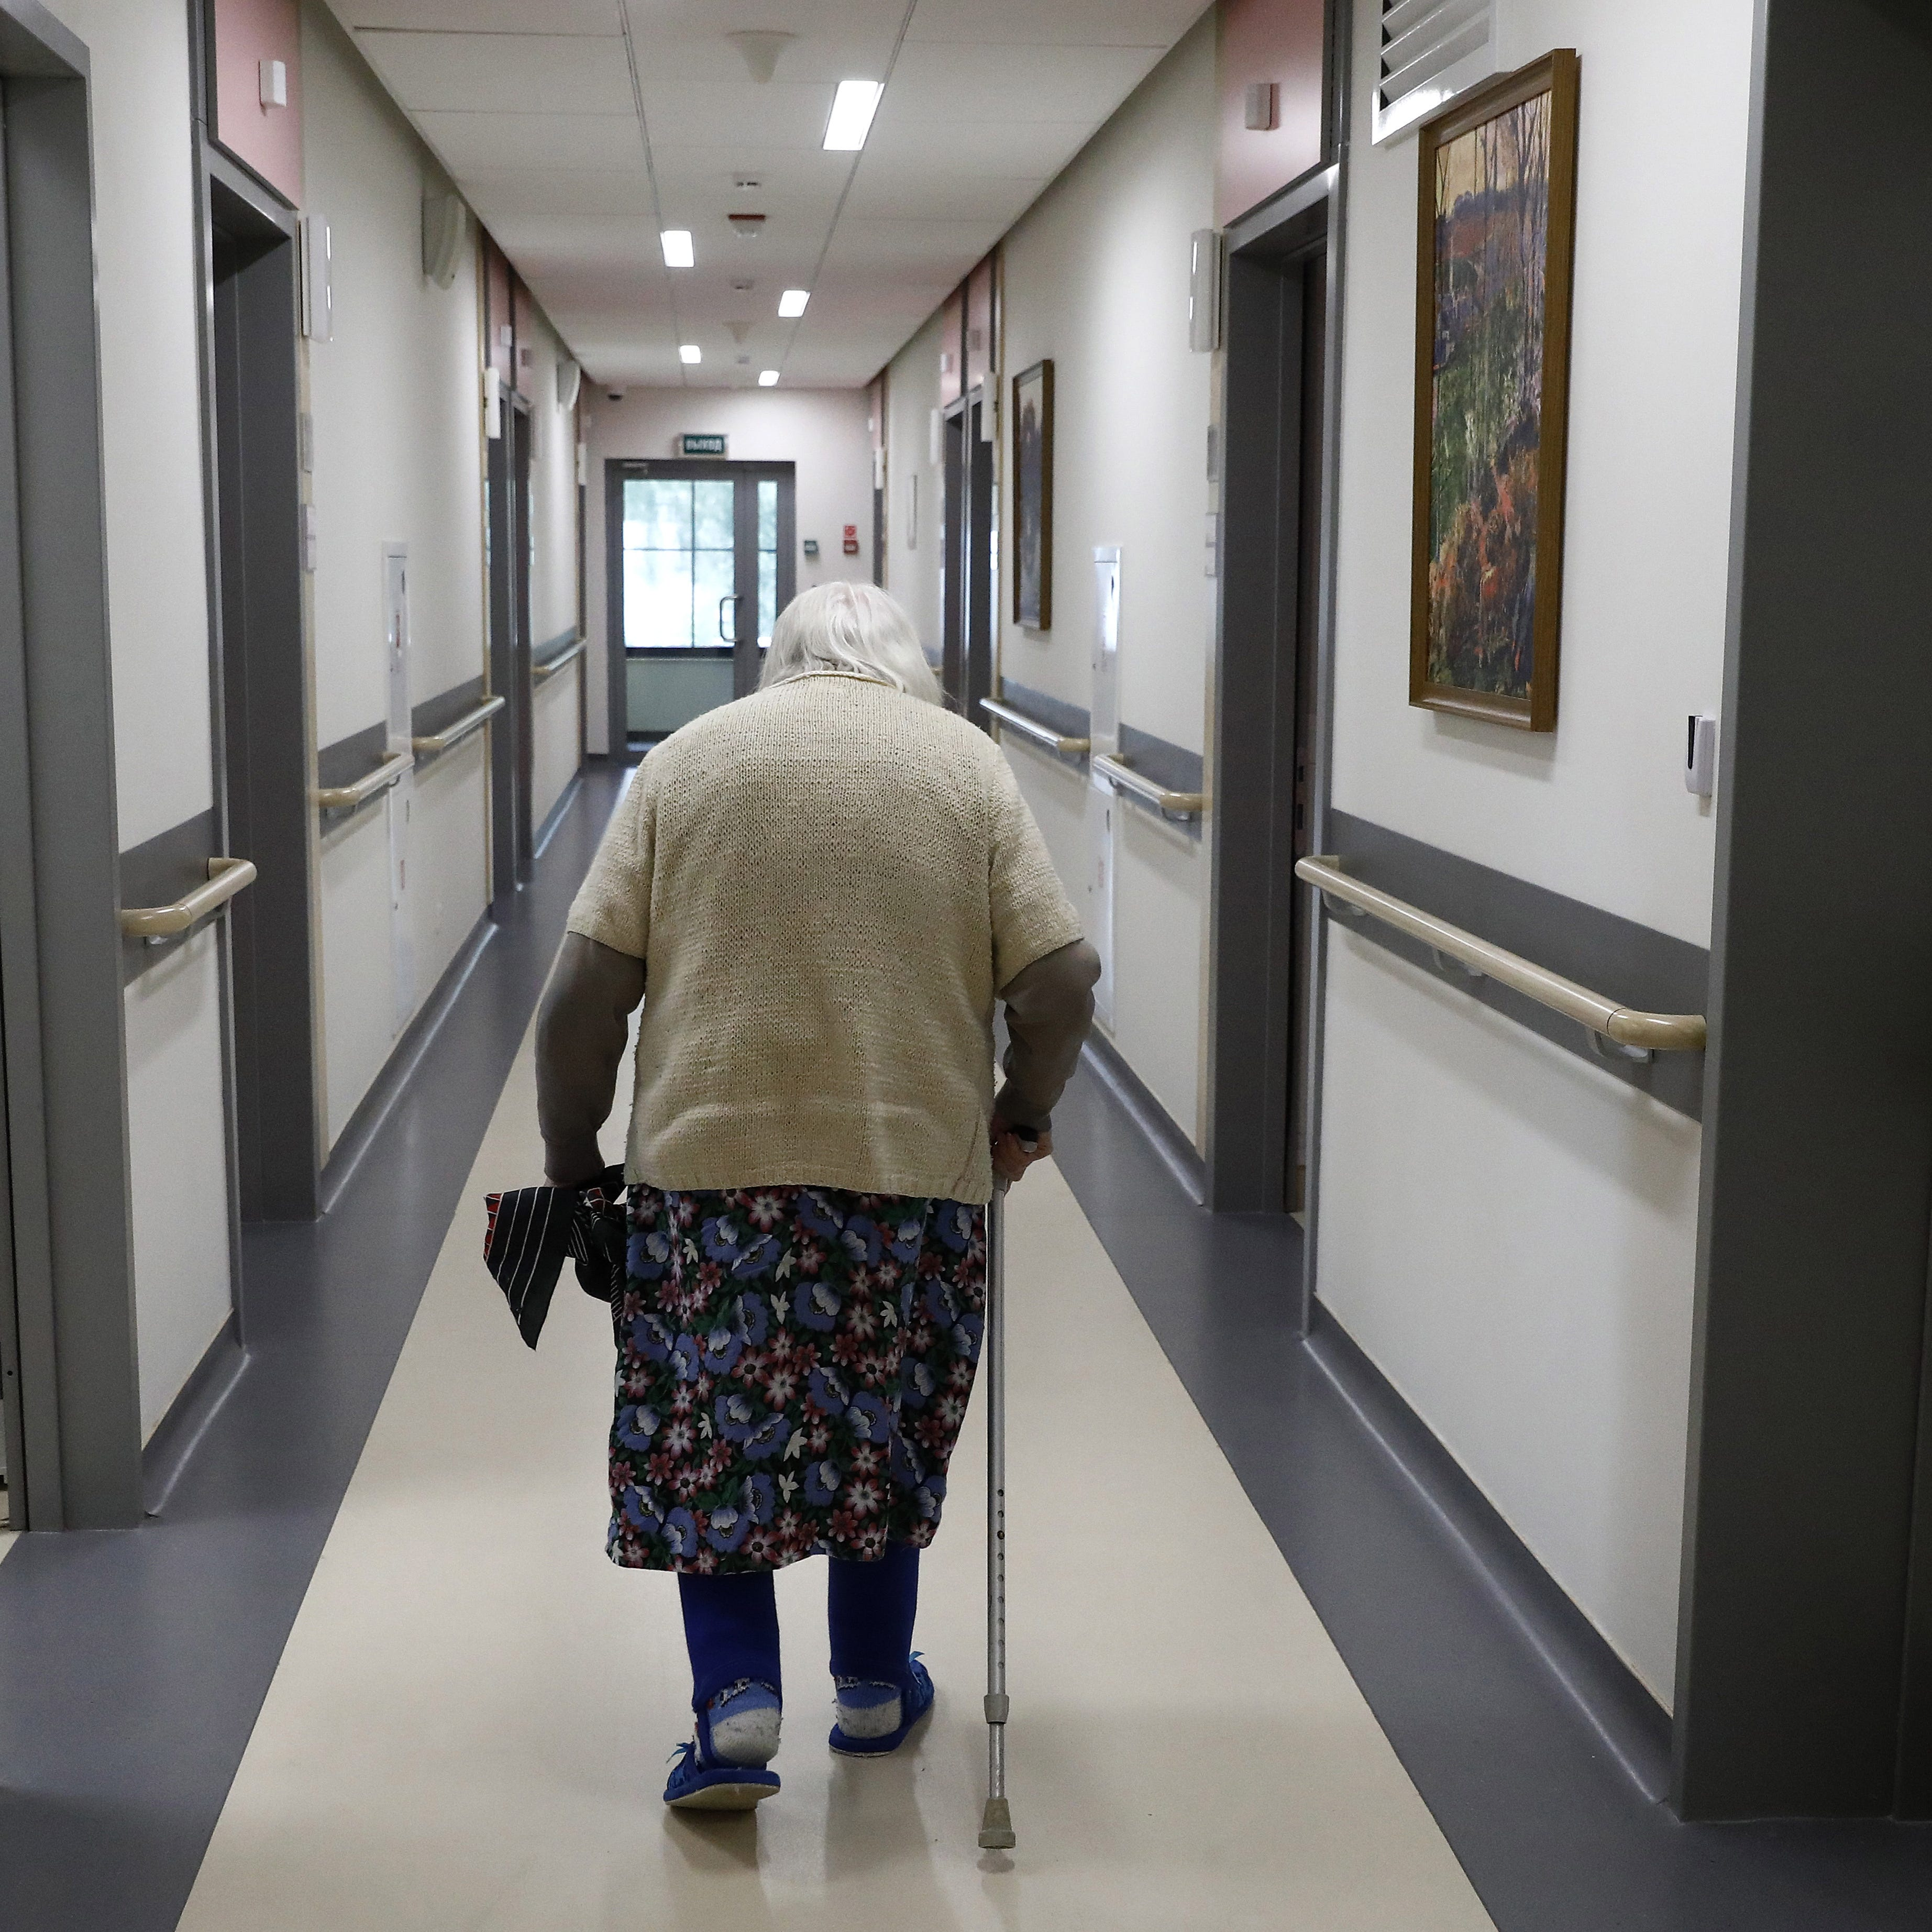 Medicare cuts payments to 85 percent of Miss. nursing homes for hospital readmissions